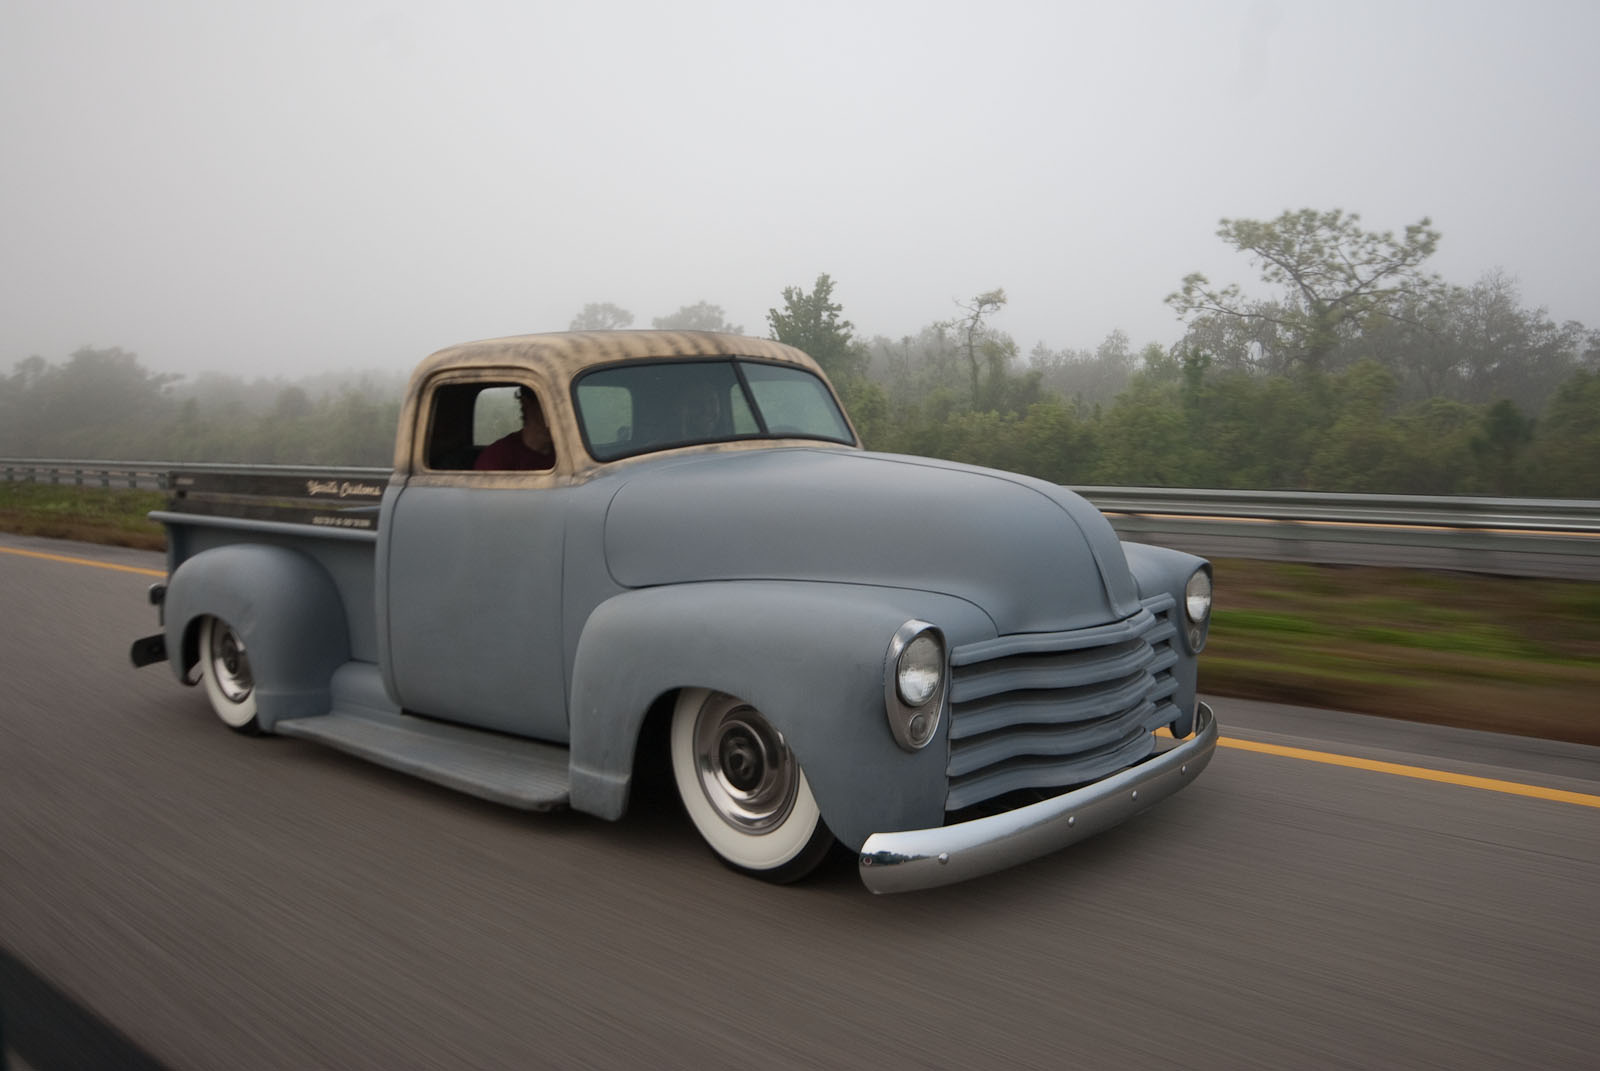 1952 Chevy Truck Chop Top Yarils Customs 1949 Frame Swap Dsc0007